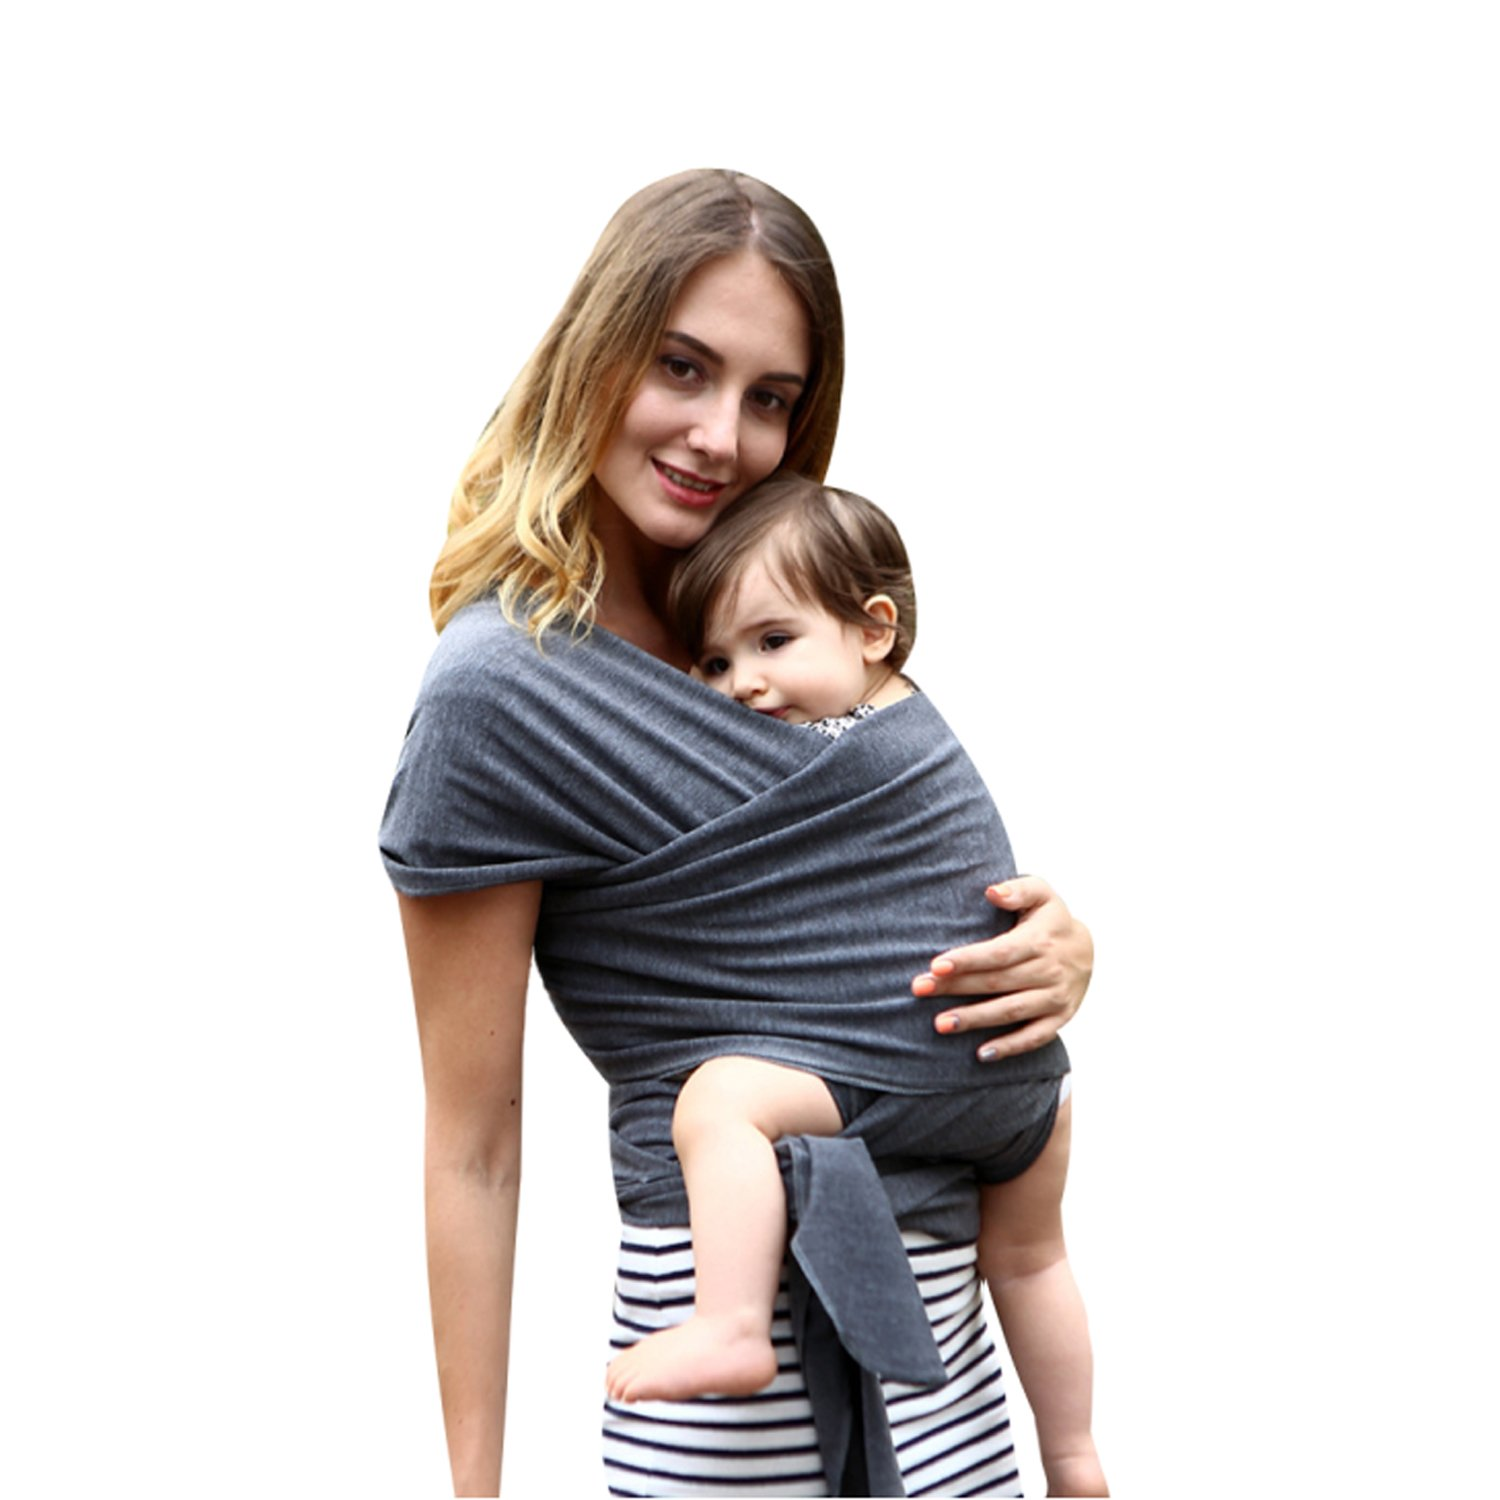 Coodebear Baby Wrap Cotton Baby Carrier Sling Stretchy Baby Holder Nursing Cover